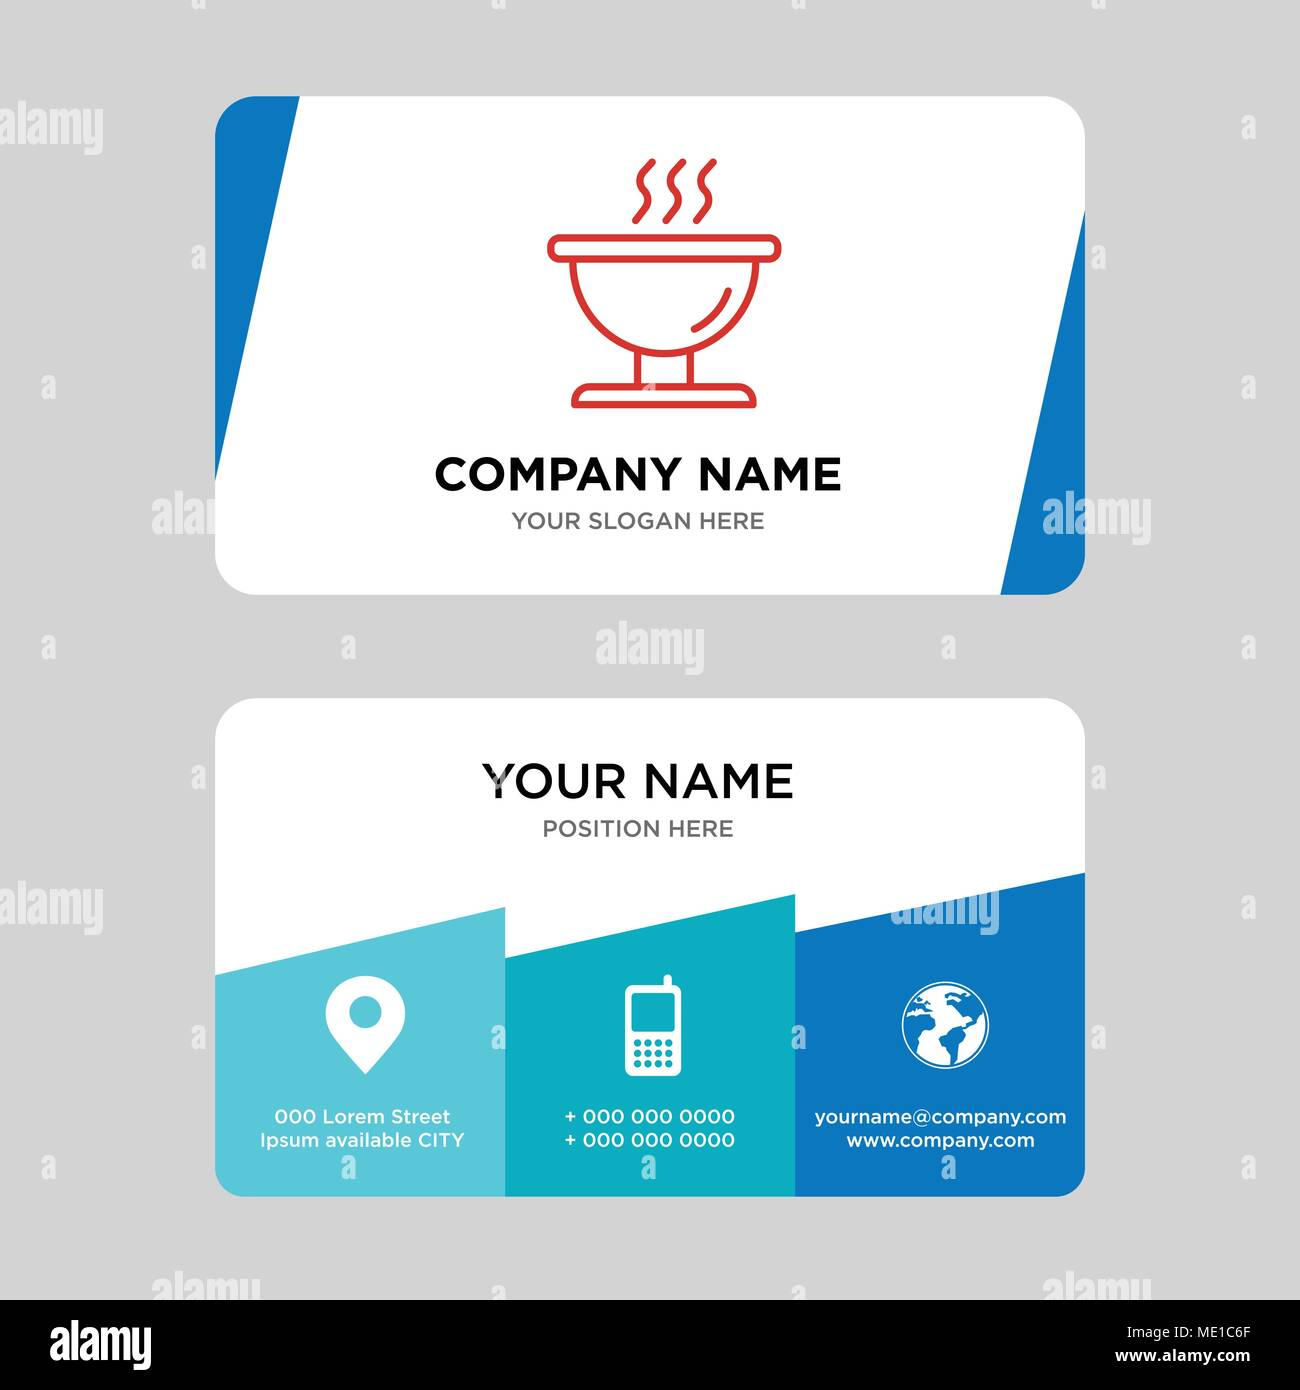 Bbq Business Card Design Template Visiting For Your Company Modern